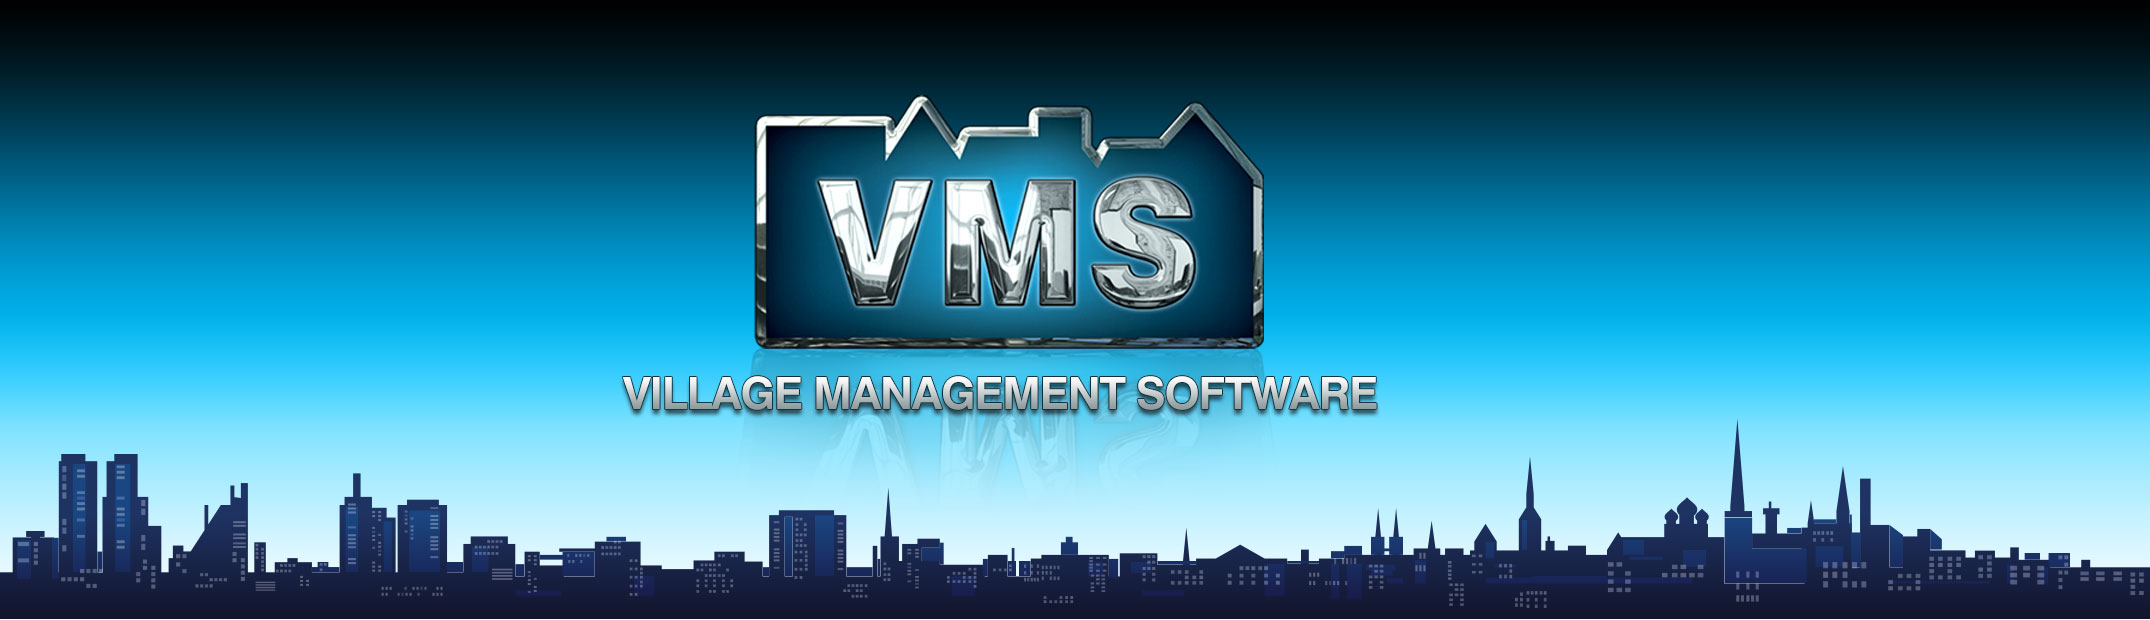 Village Management Software